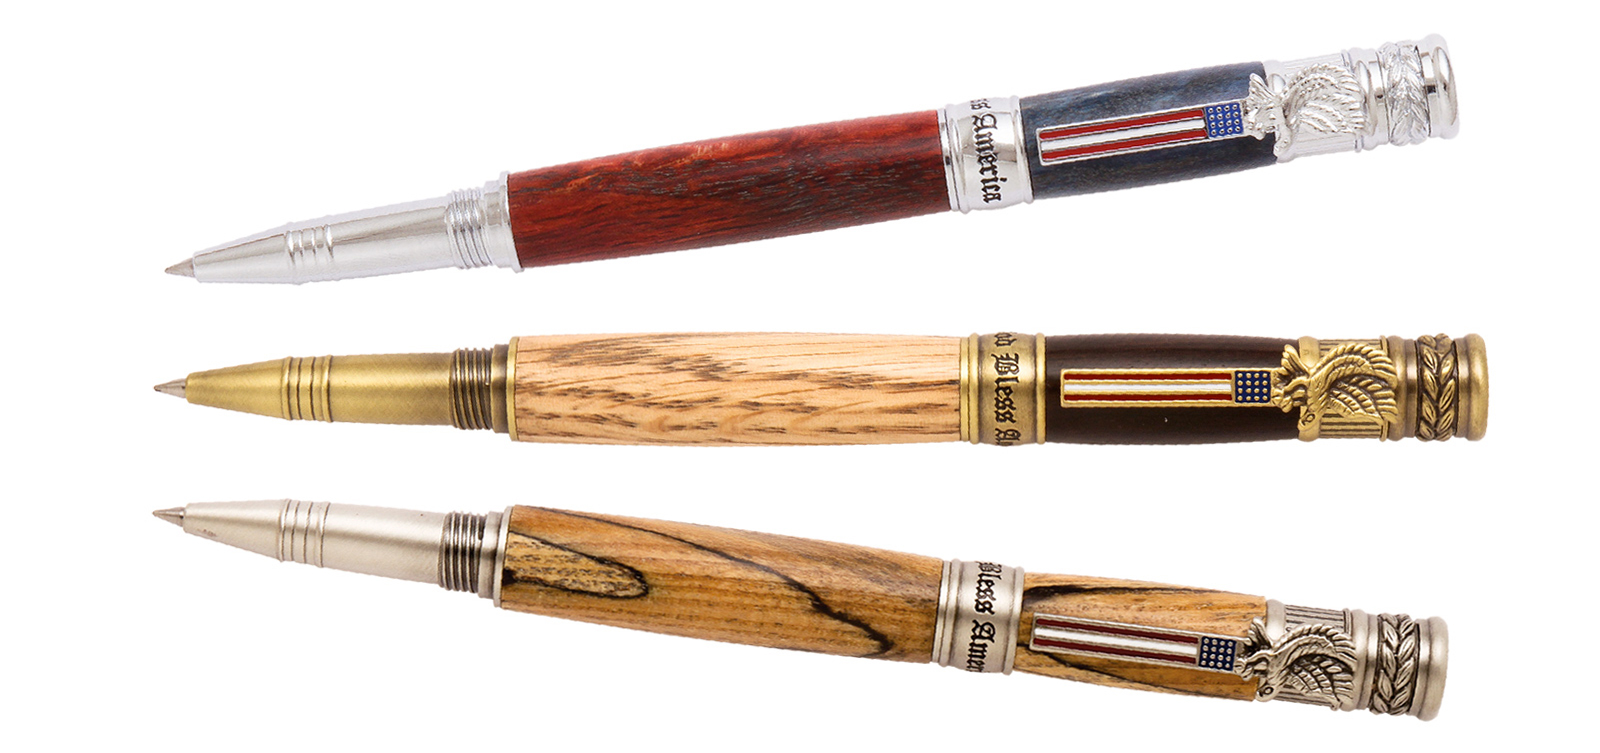 Handcrafted American Patriot Pens